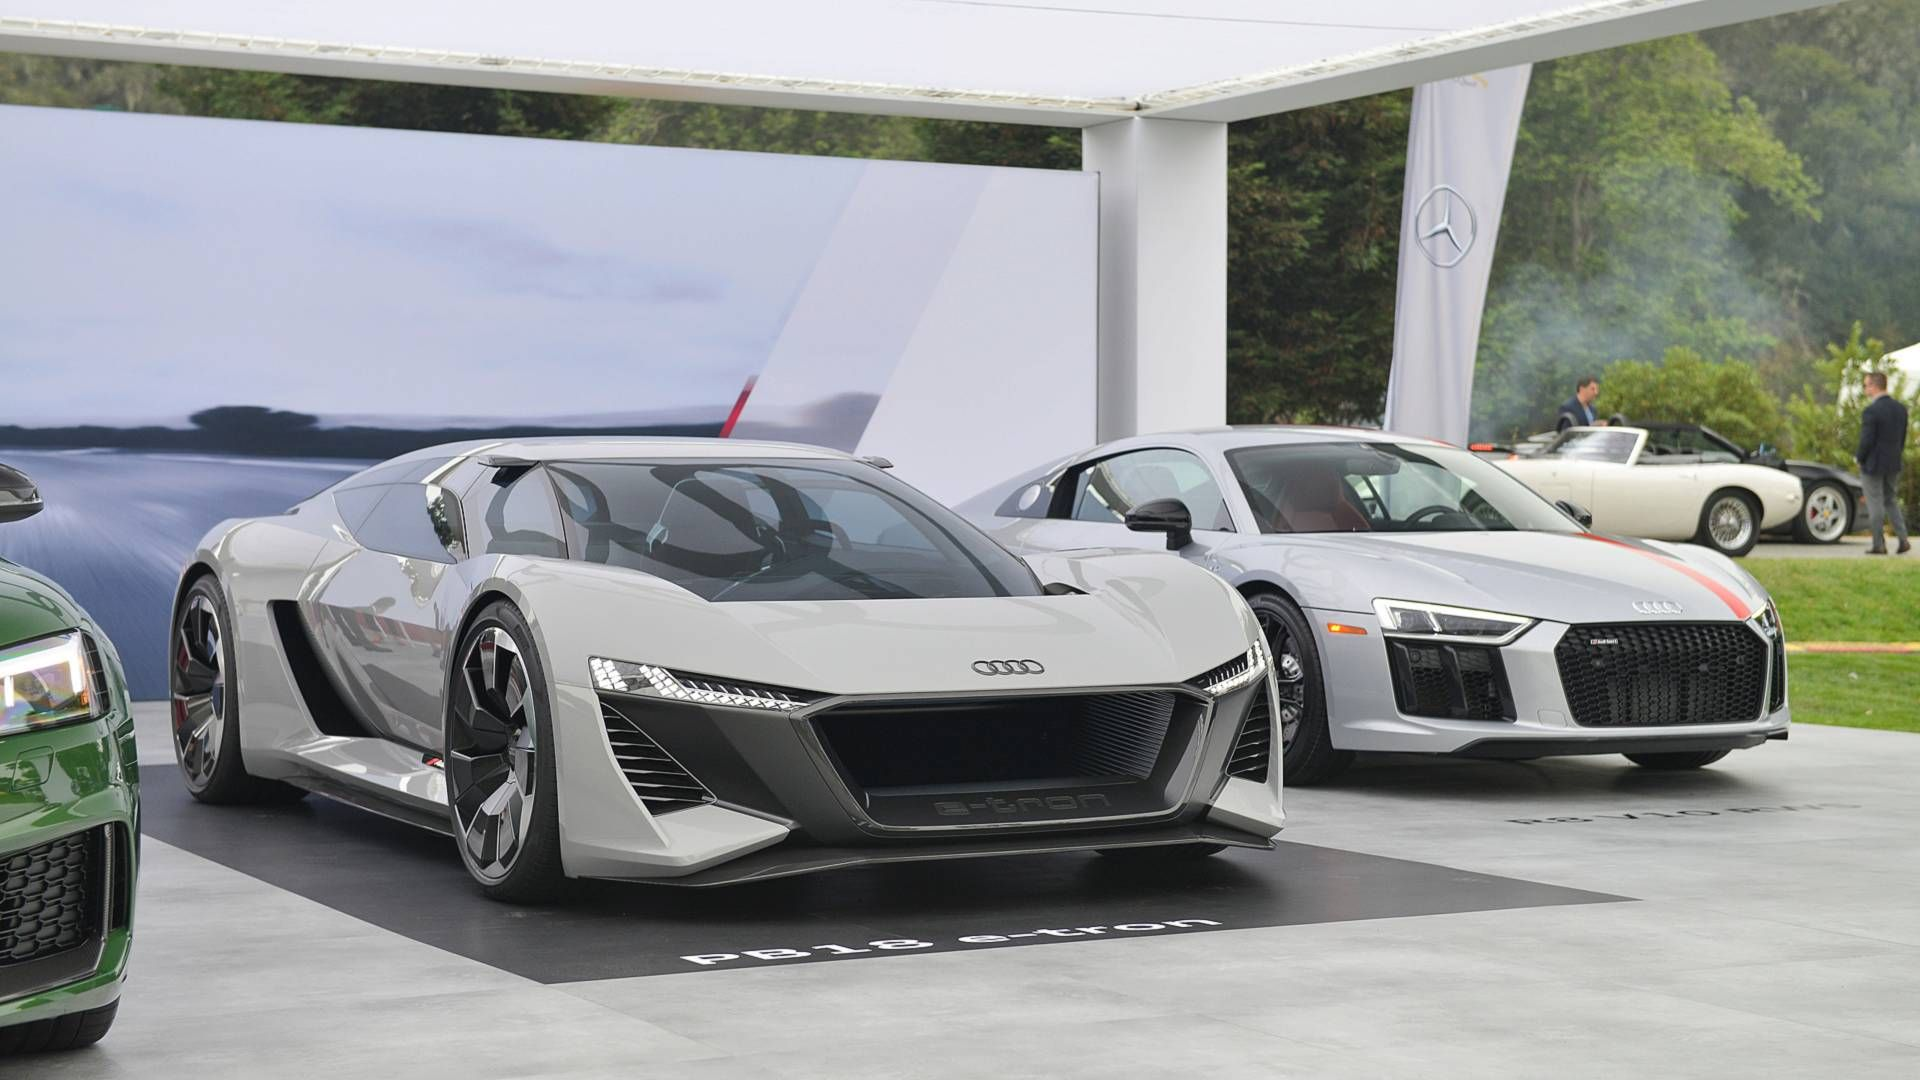 Audi P18 E Tron Supercar Confirmed For Limited Production In 2020 Audi Super Cars Audi R8 Price